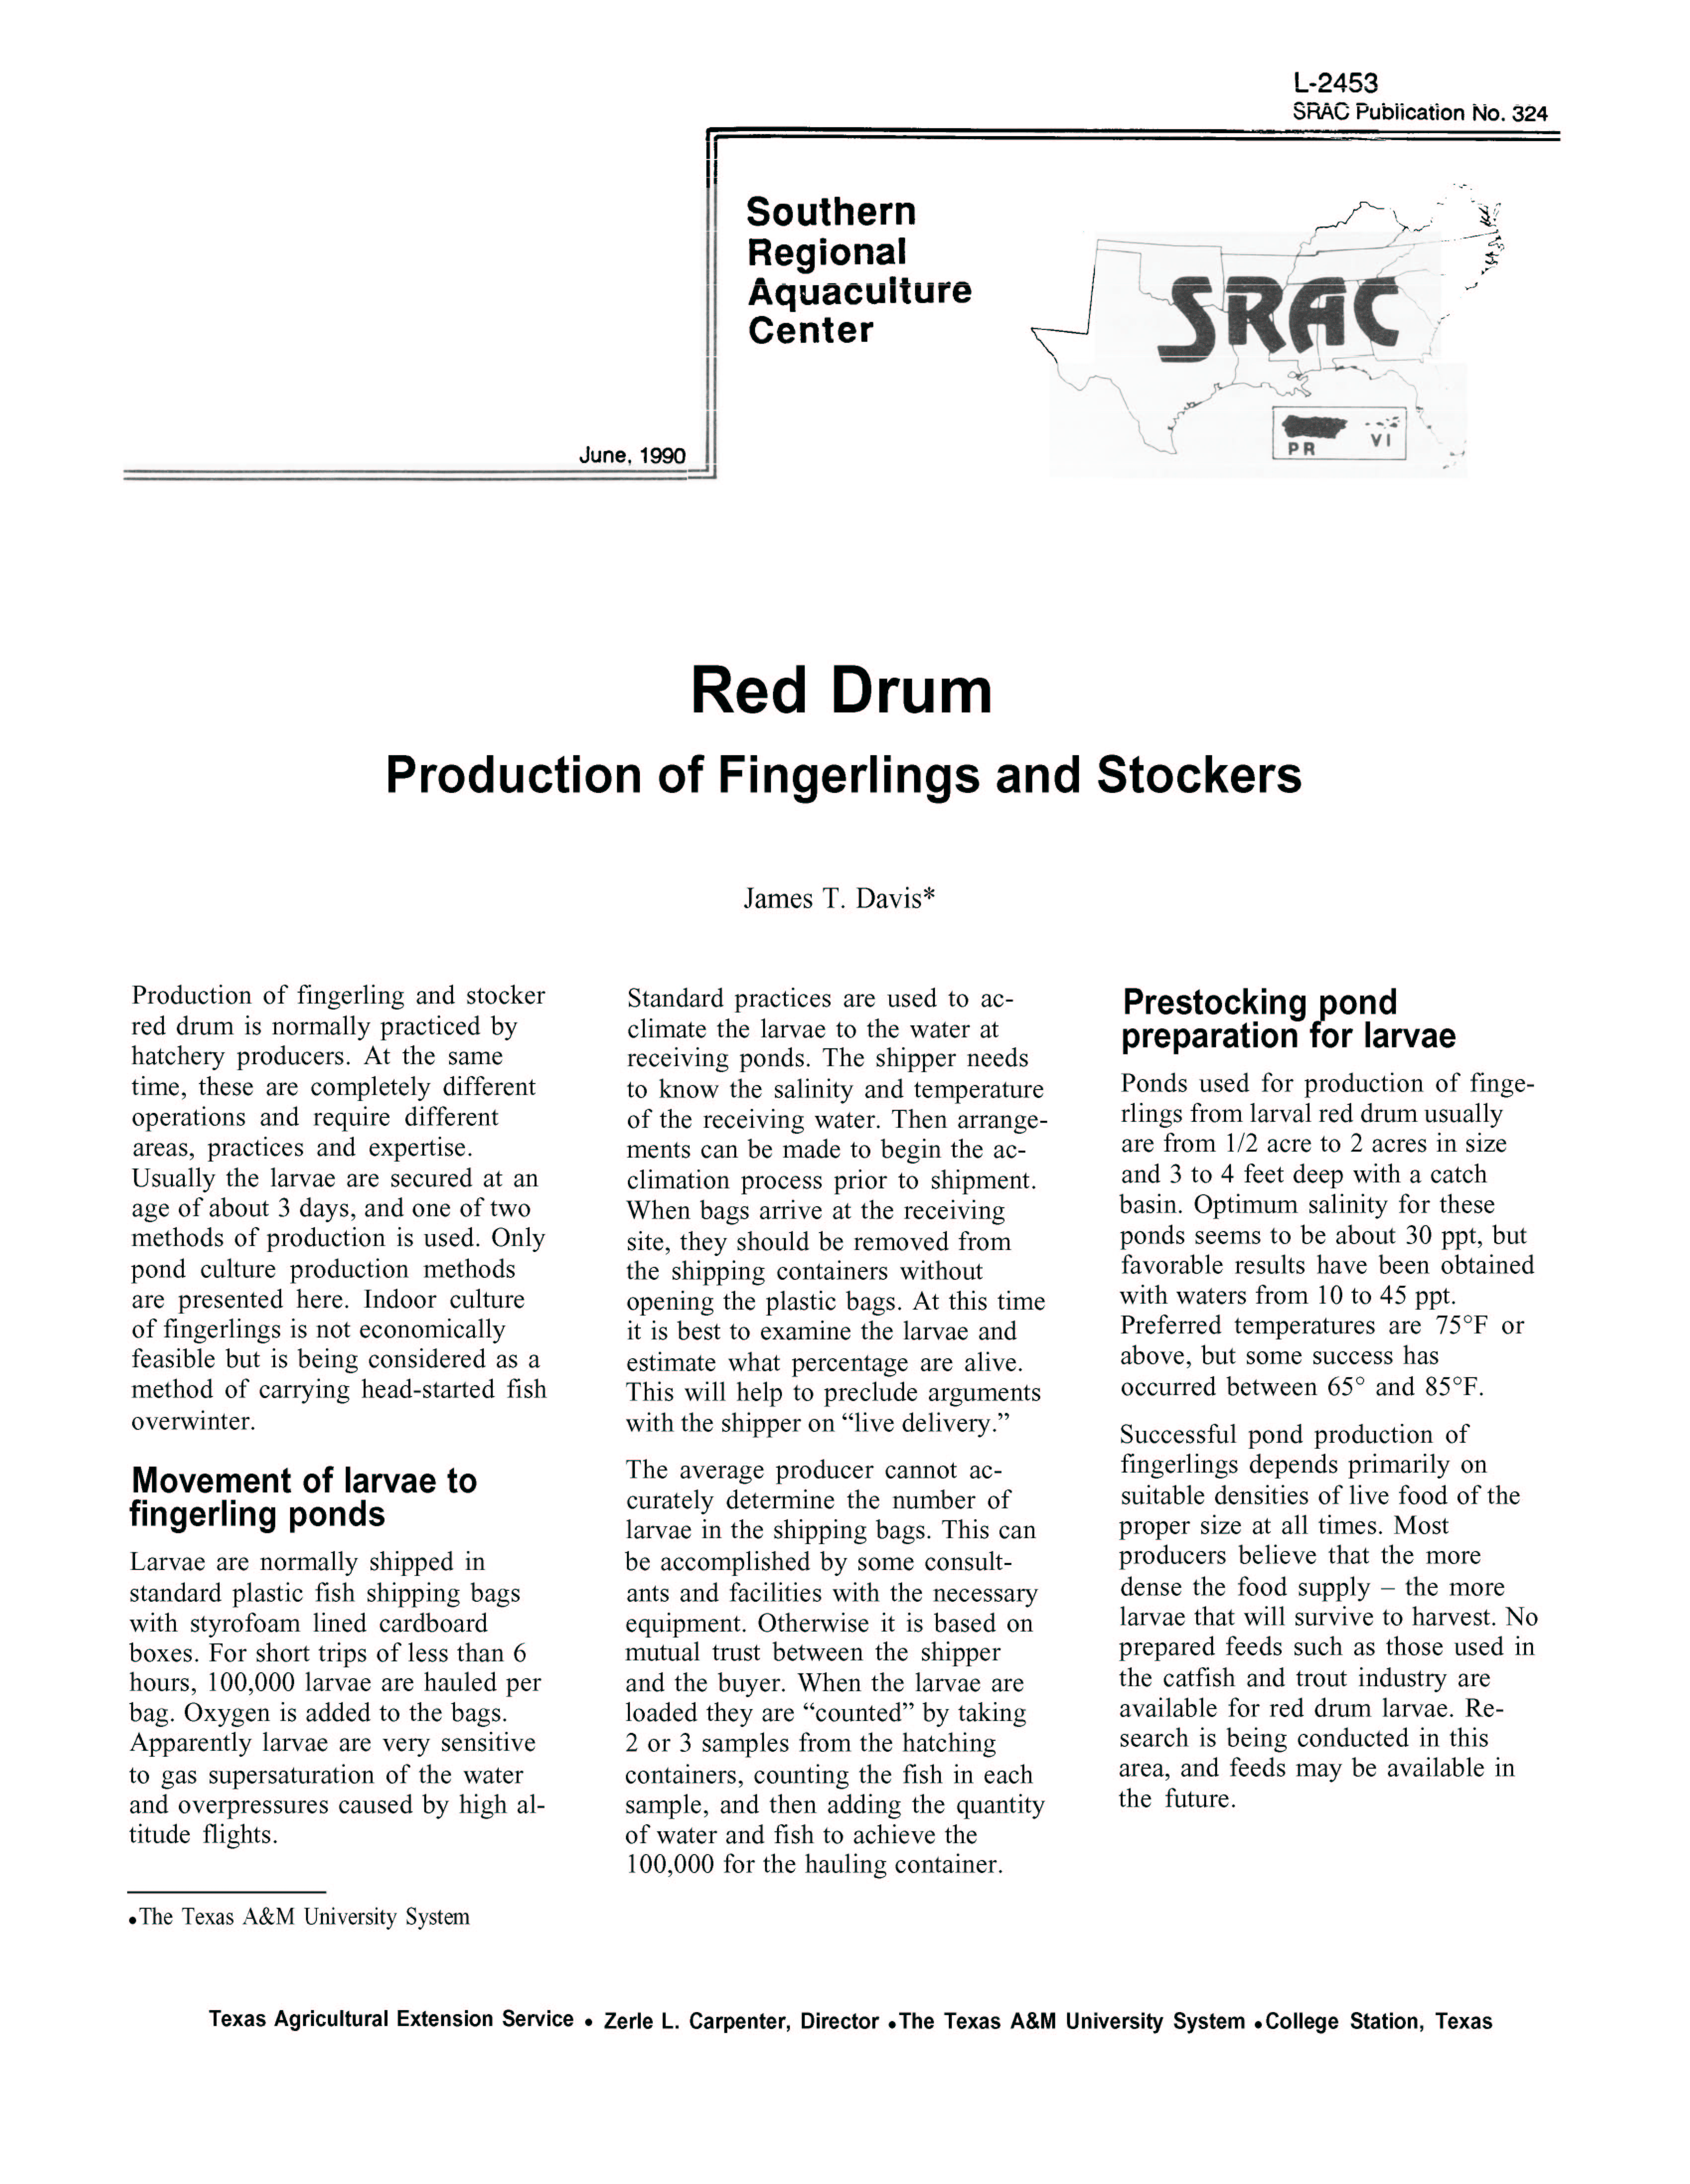 Red Drum: Production of Fingerlings and Stockers